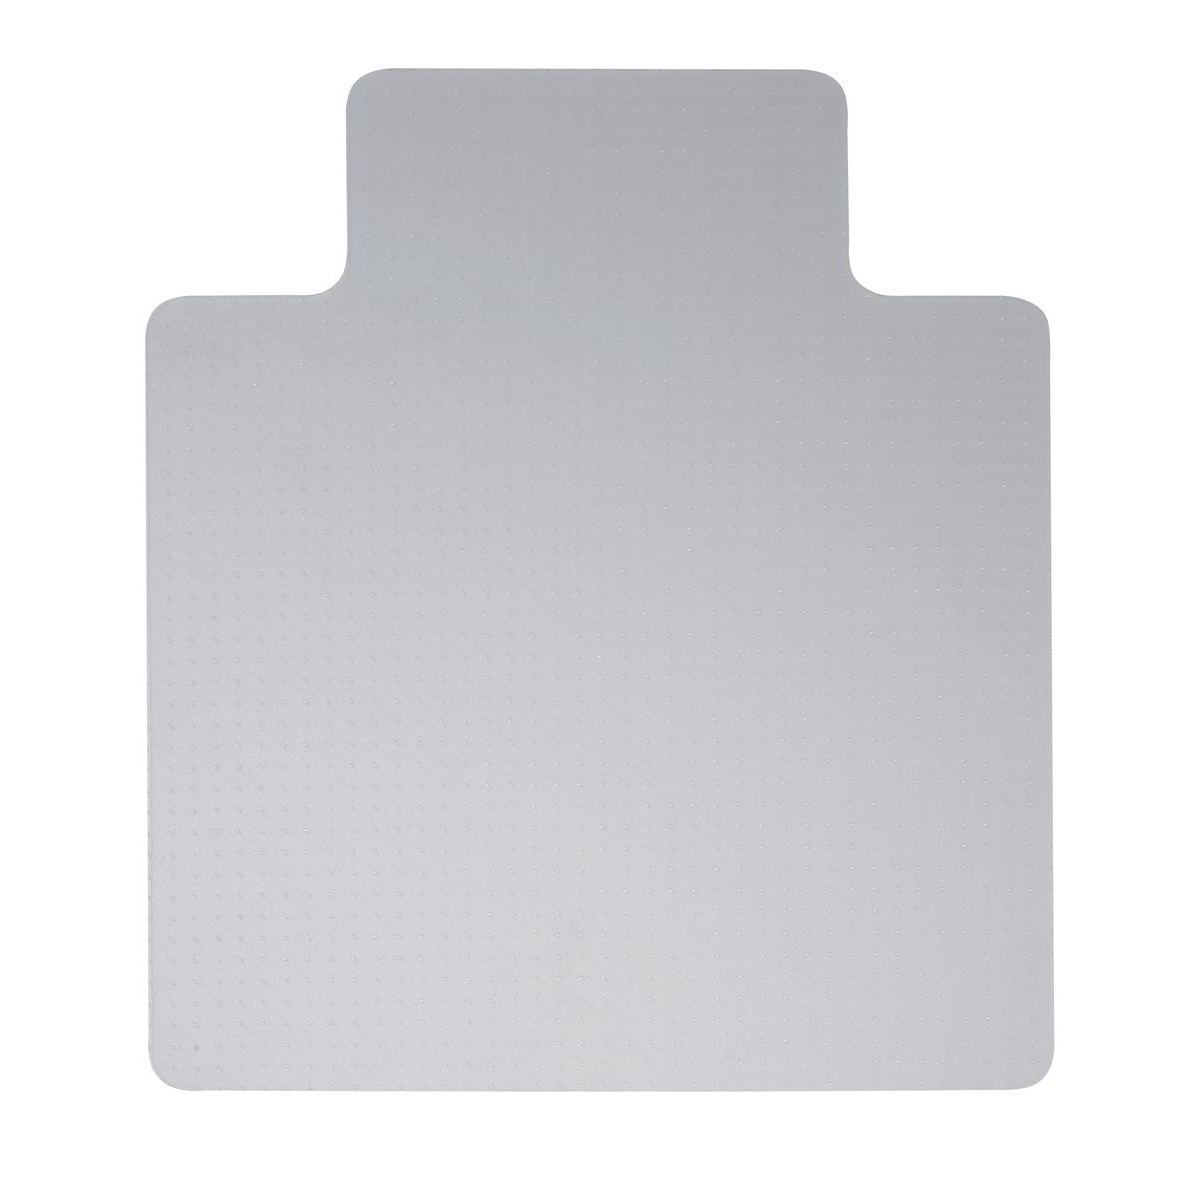 5 Star Office Chair Mat For Carpets PVC Lipped 1150x1340mm Clear/Transparent